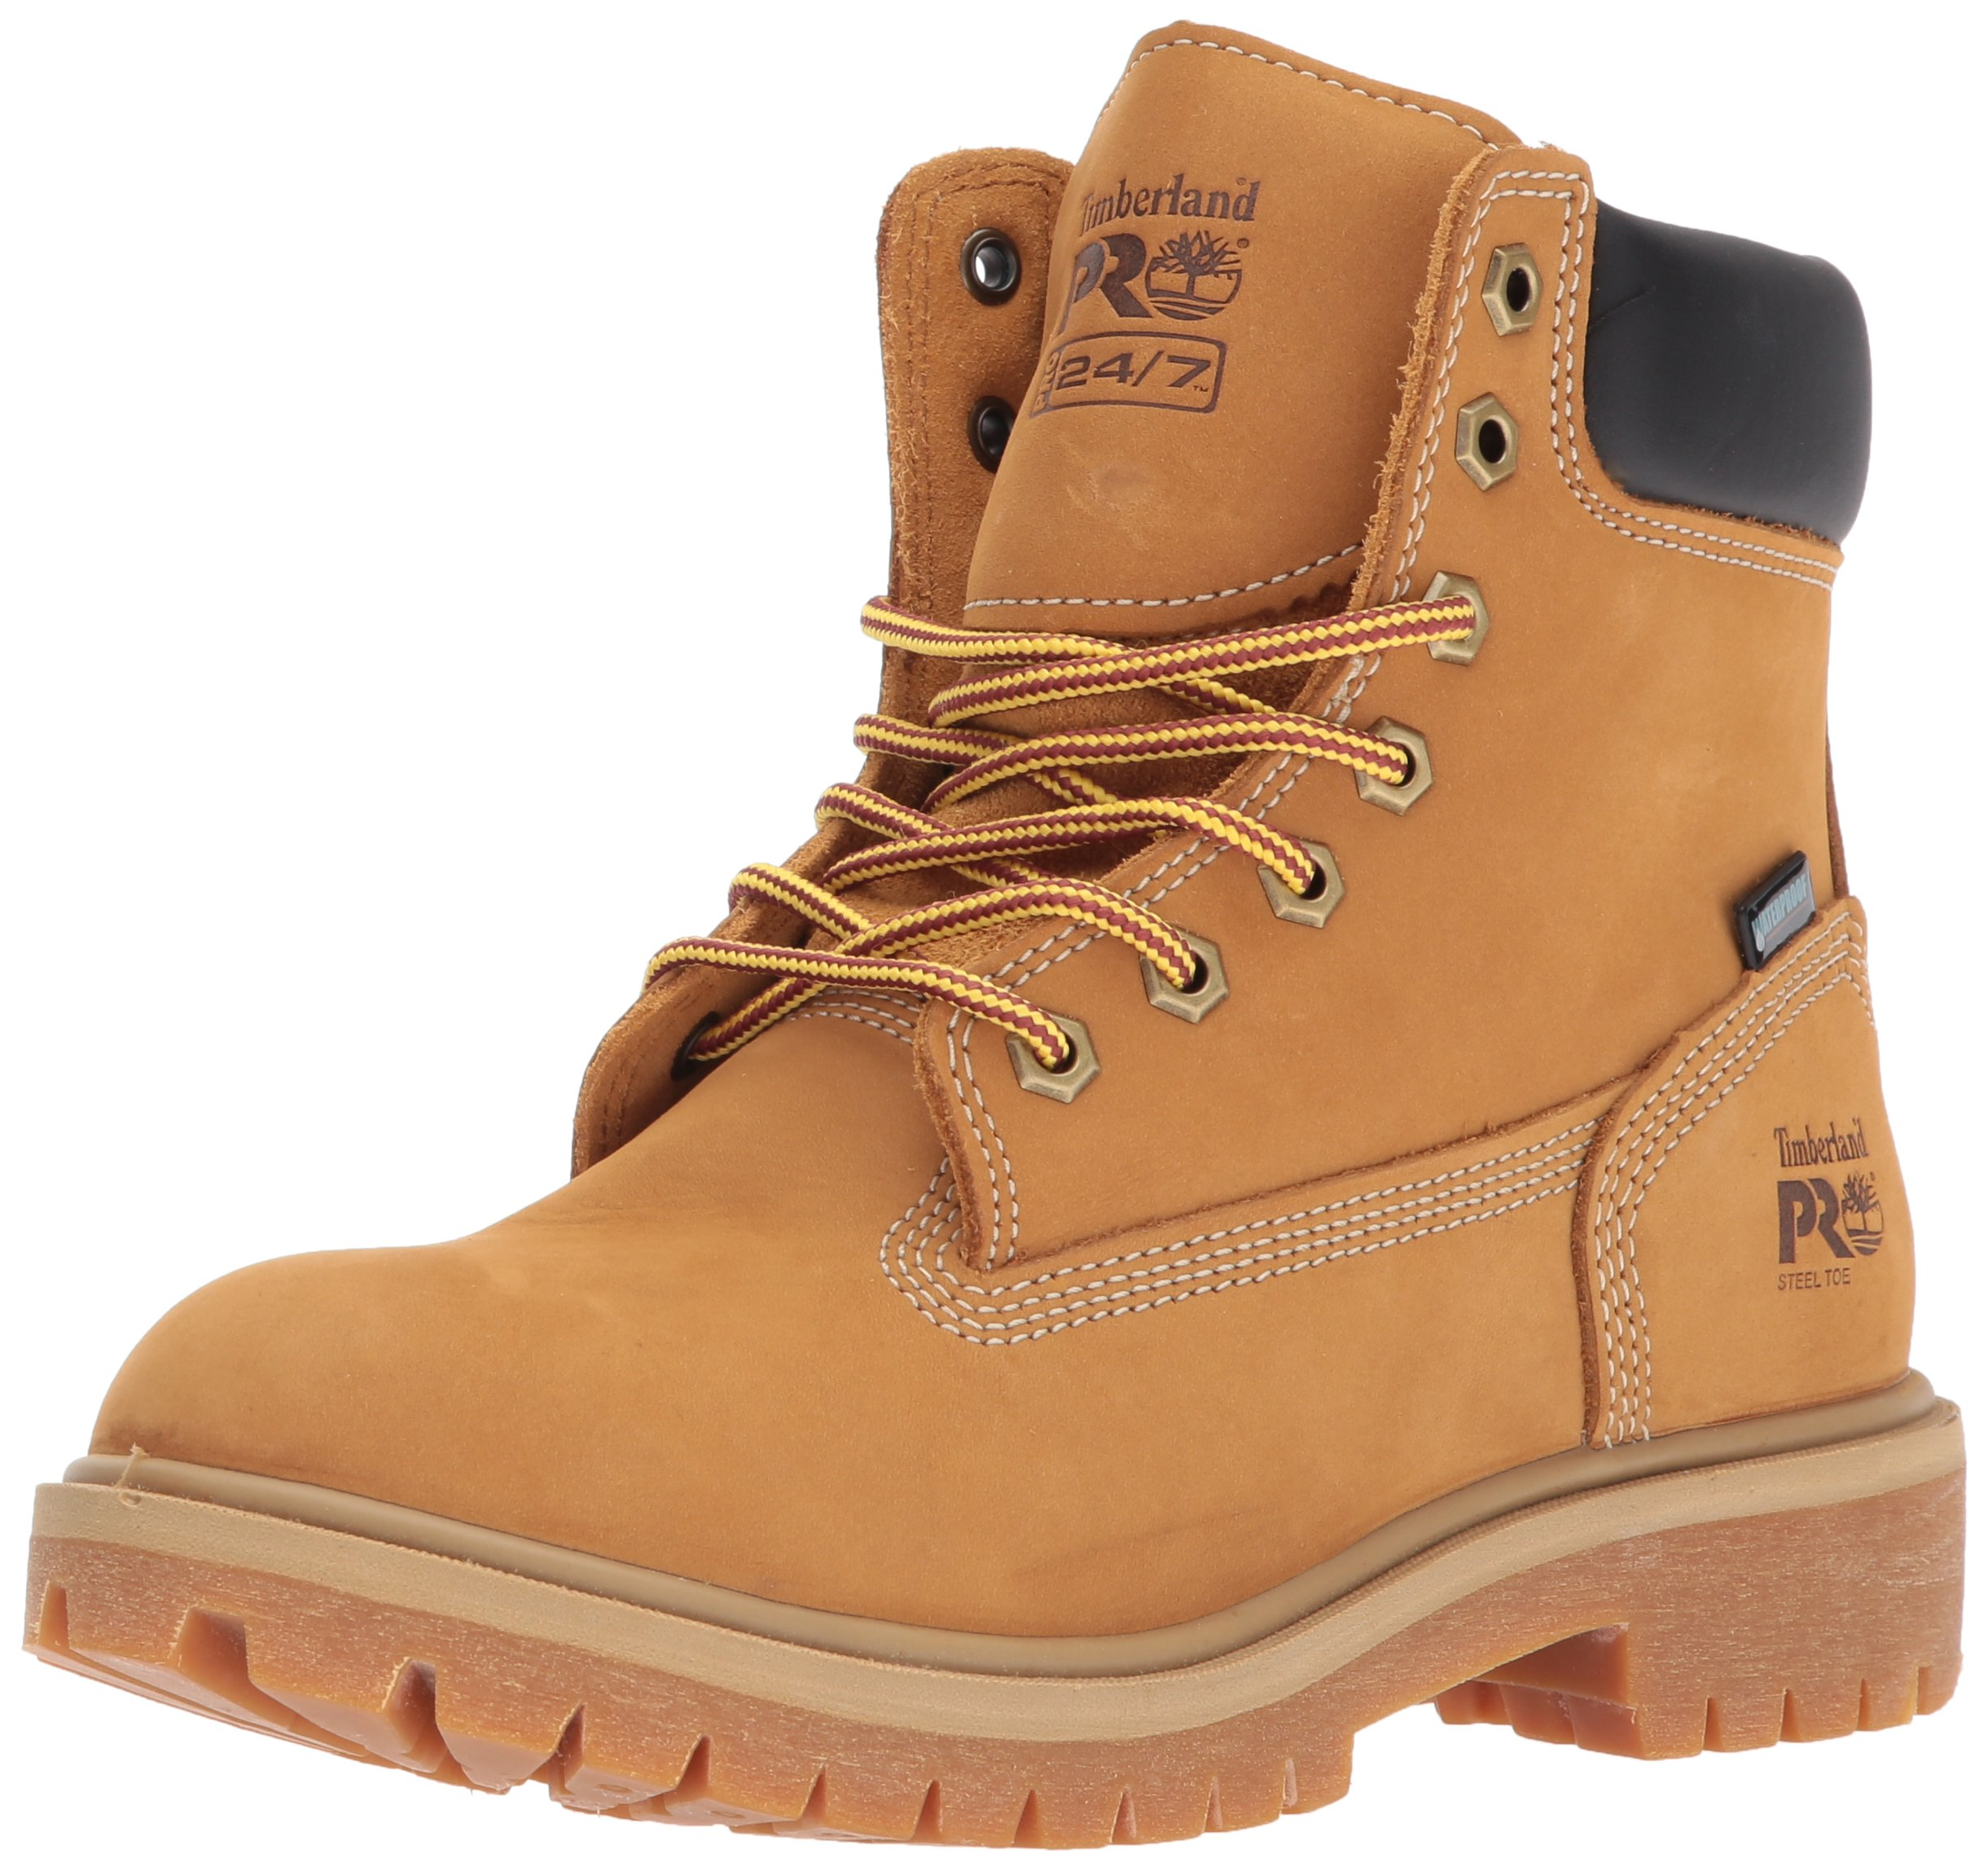 Timberland PRO Women's Direct Attach 6'' Steel Toe Waterproof Insulated Industrial and Construction Shoe, Wheat Nubuck Leather, 9 M US